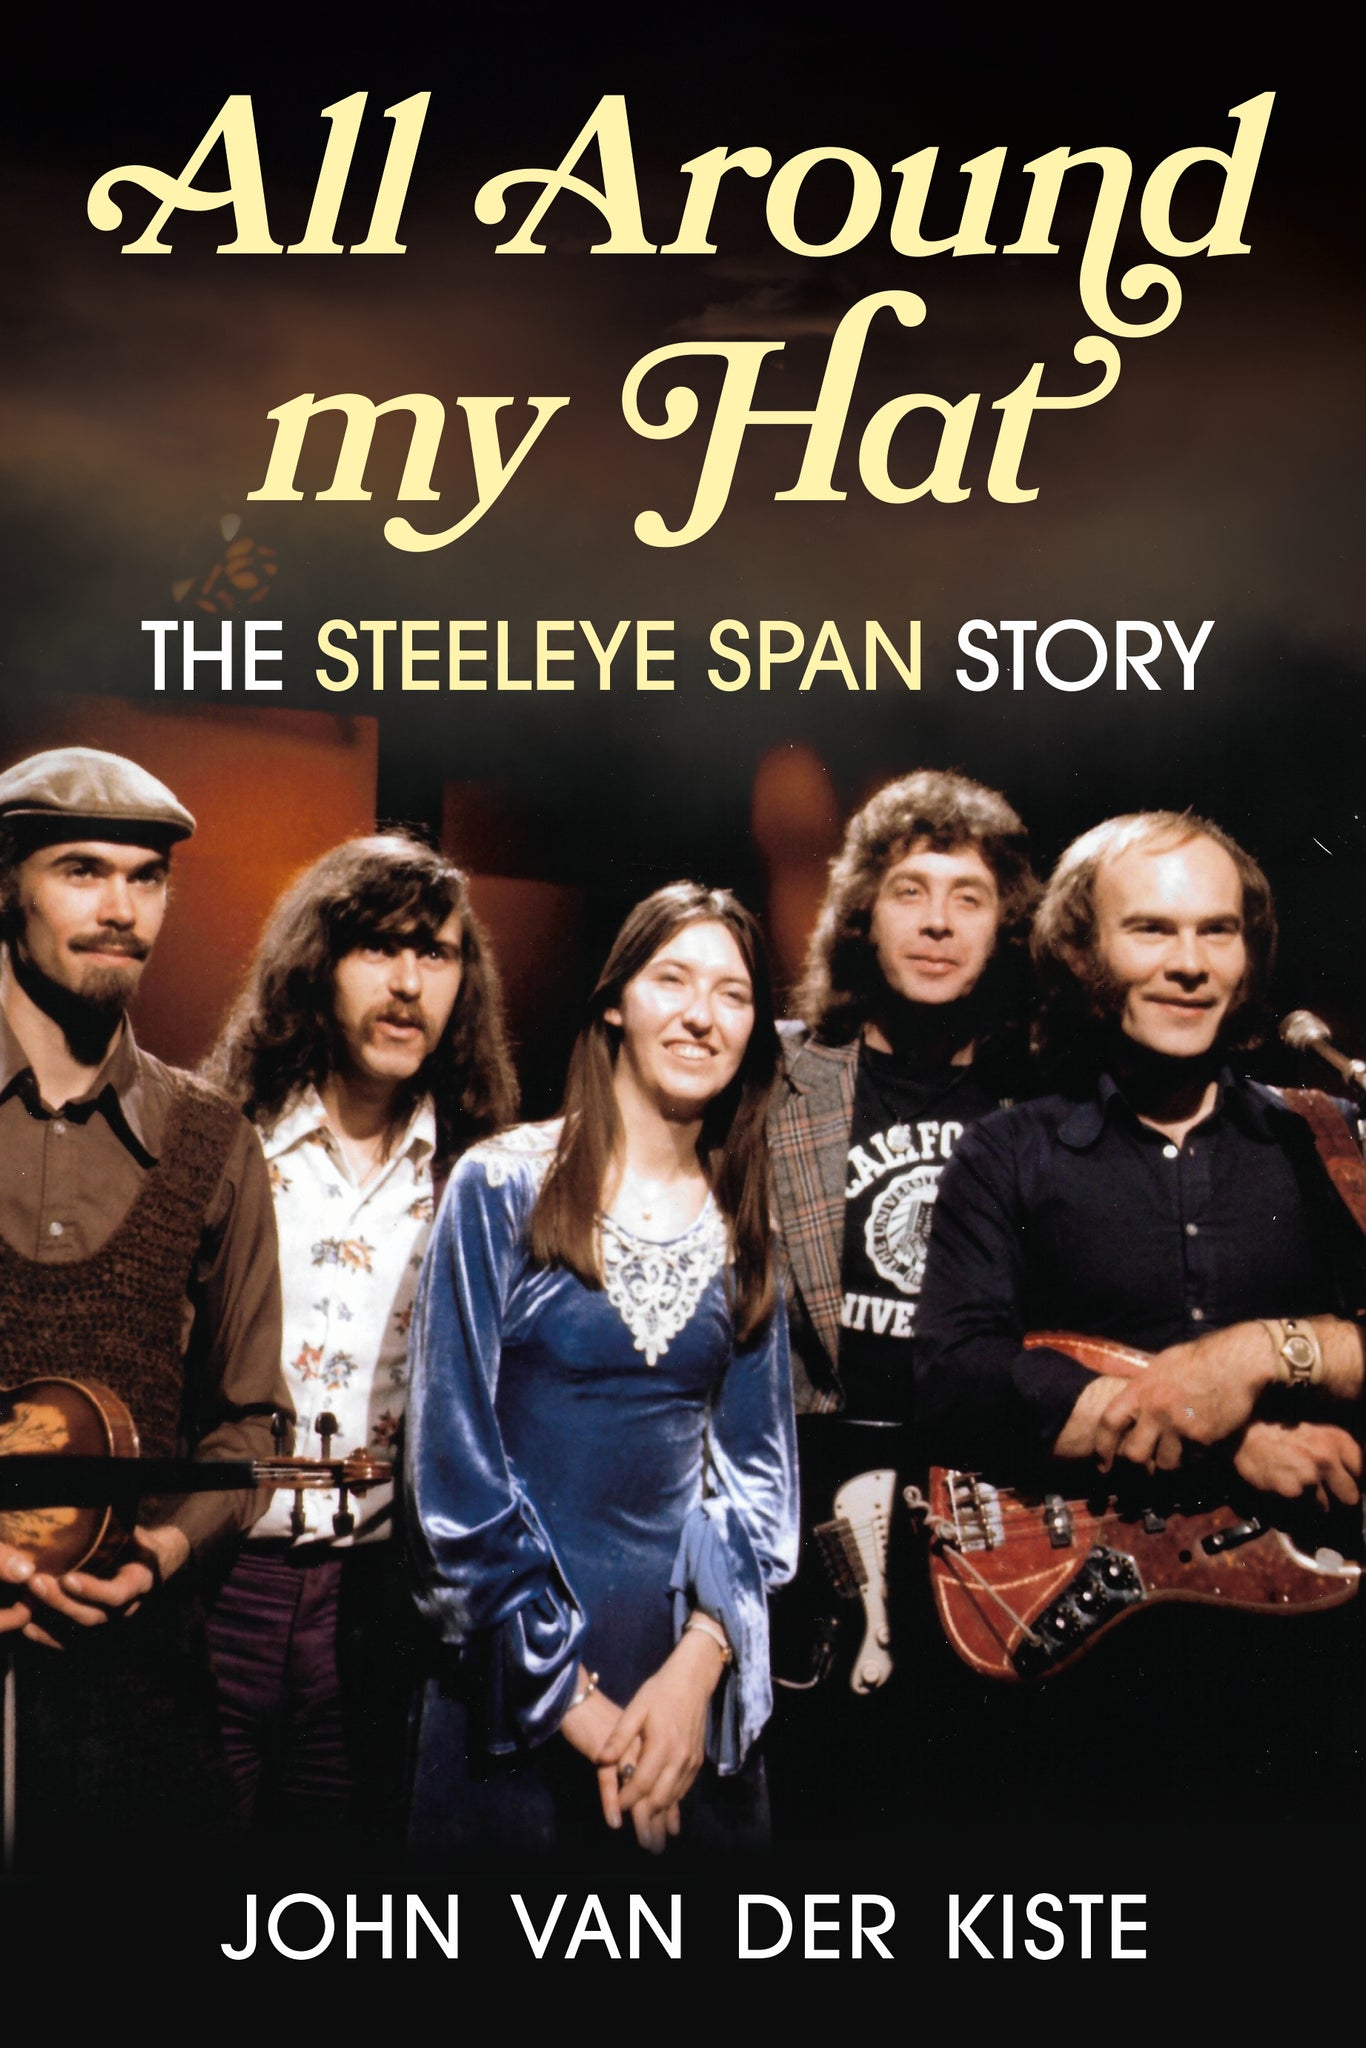 All Around my Hat: The Steeleye Span Story